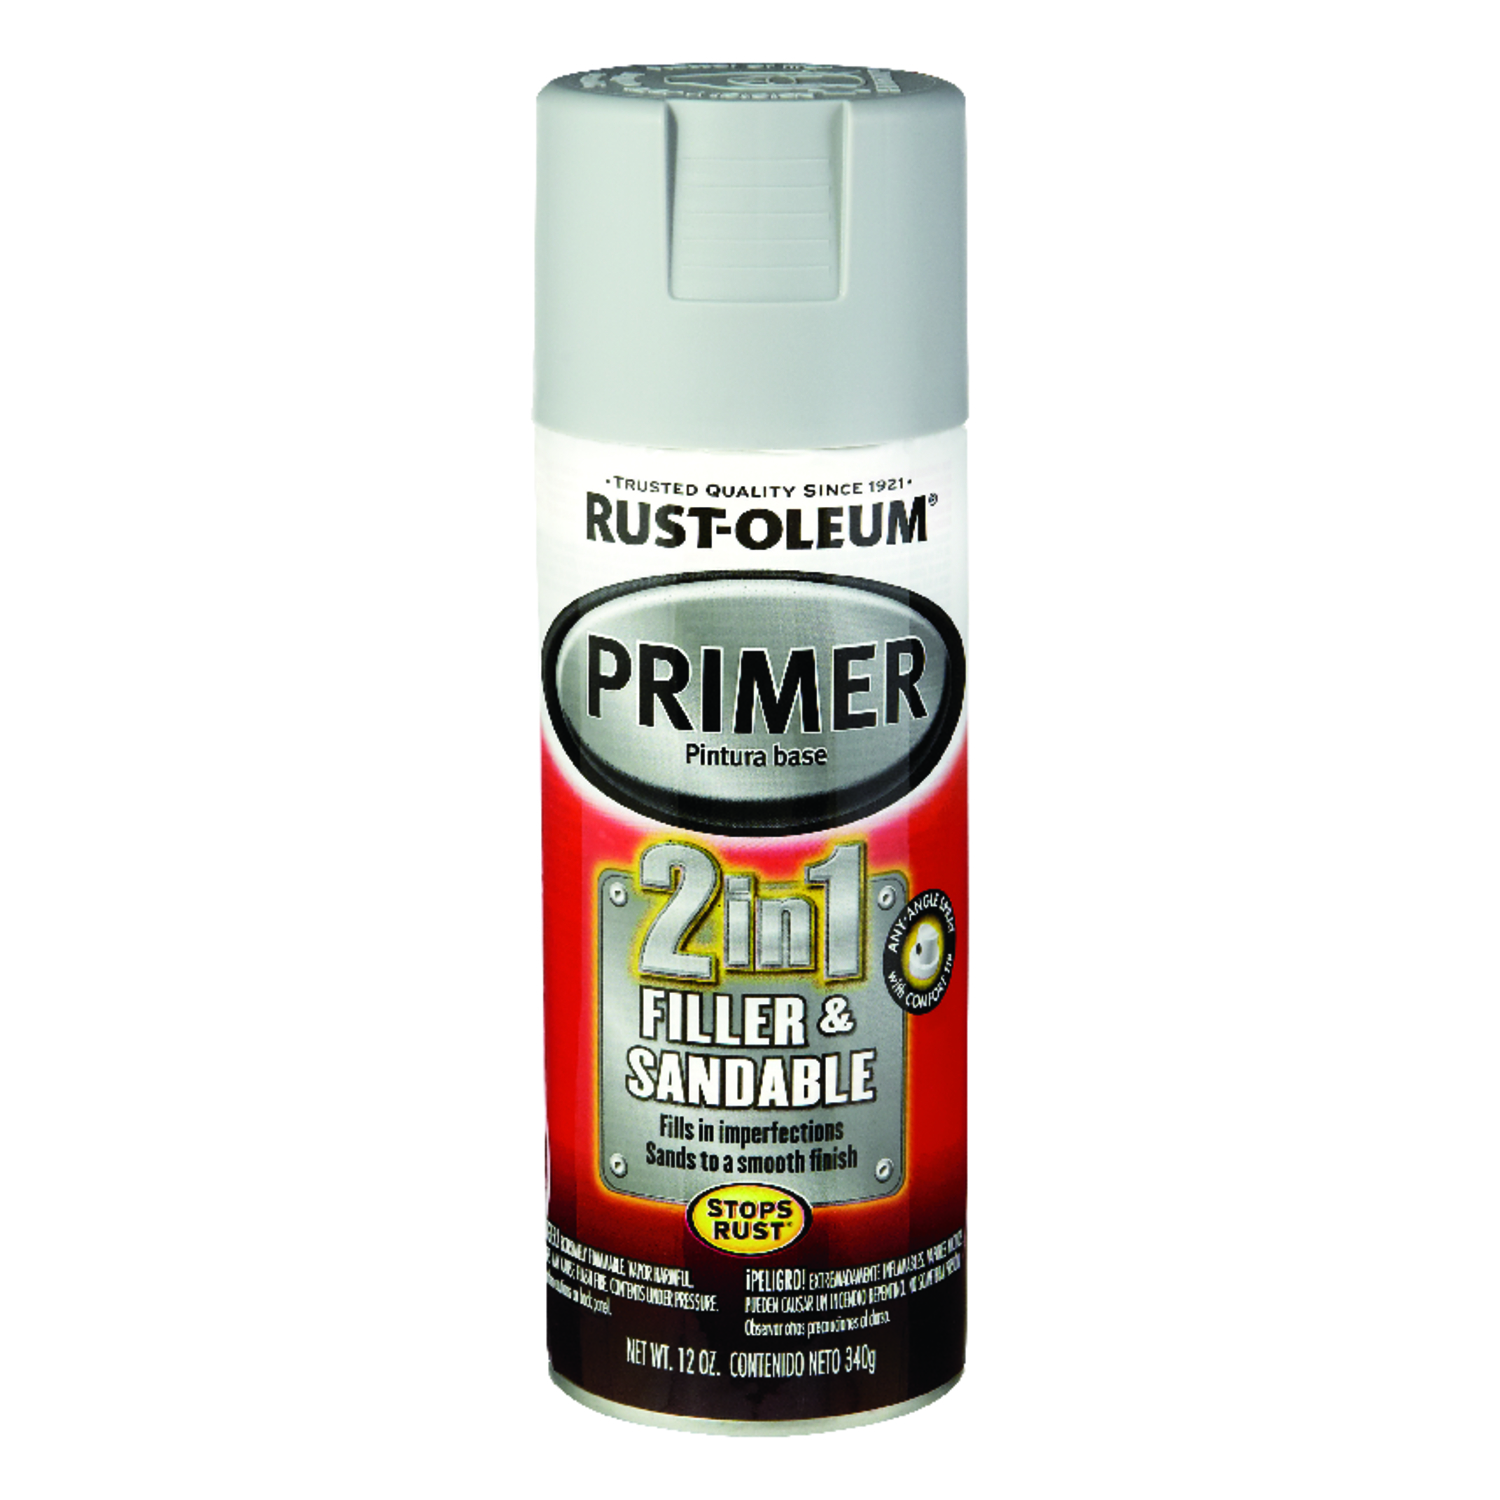 Rust-Oleum  Stops Rust  Gray  Automotive 2-in-1 Filler & Sandable Primer Spray  12 oz.